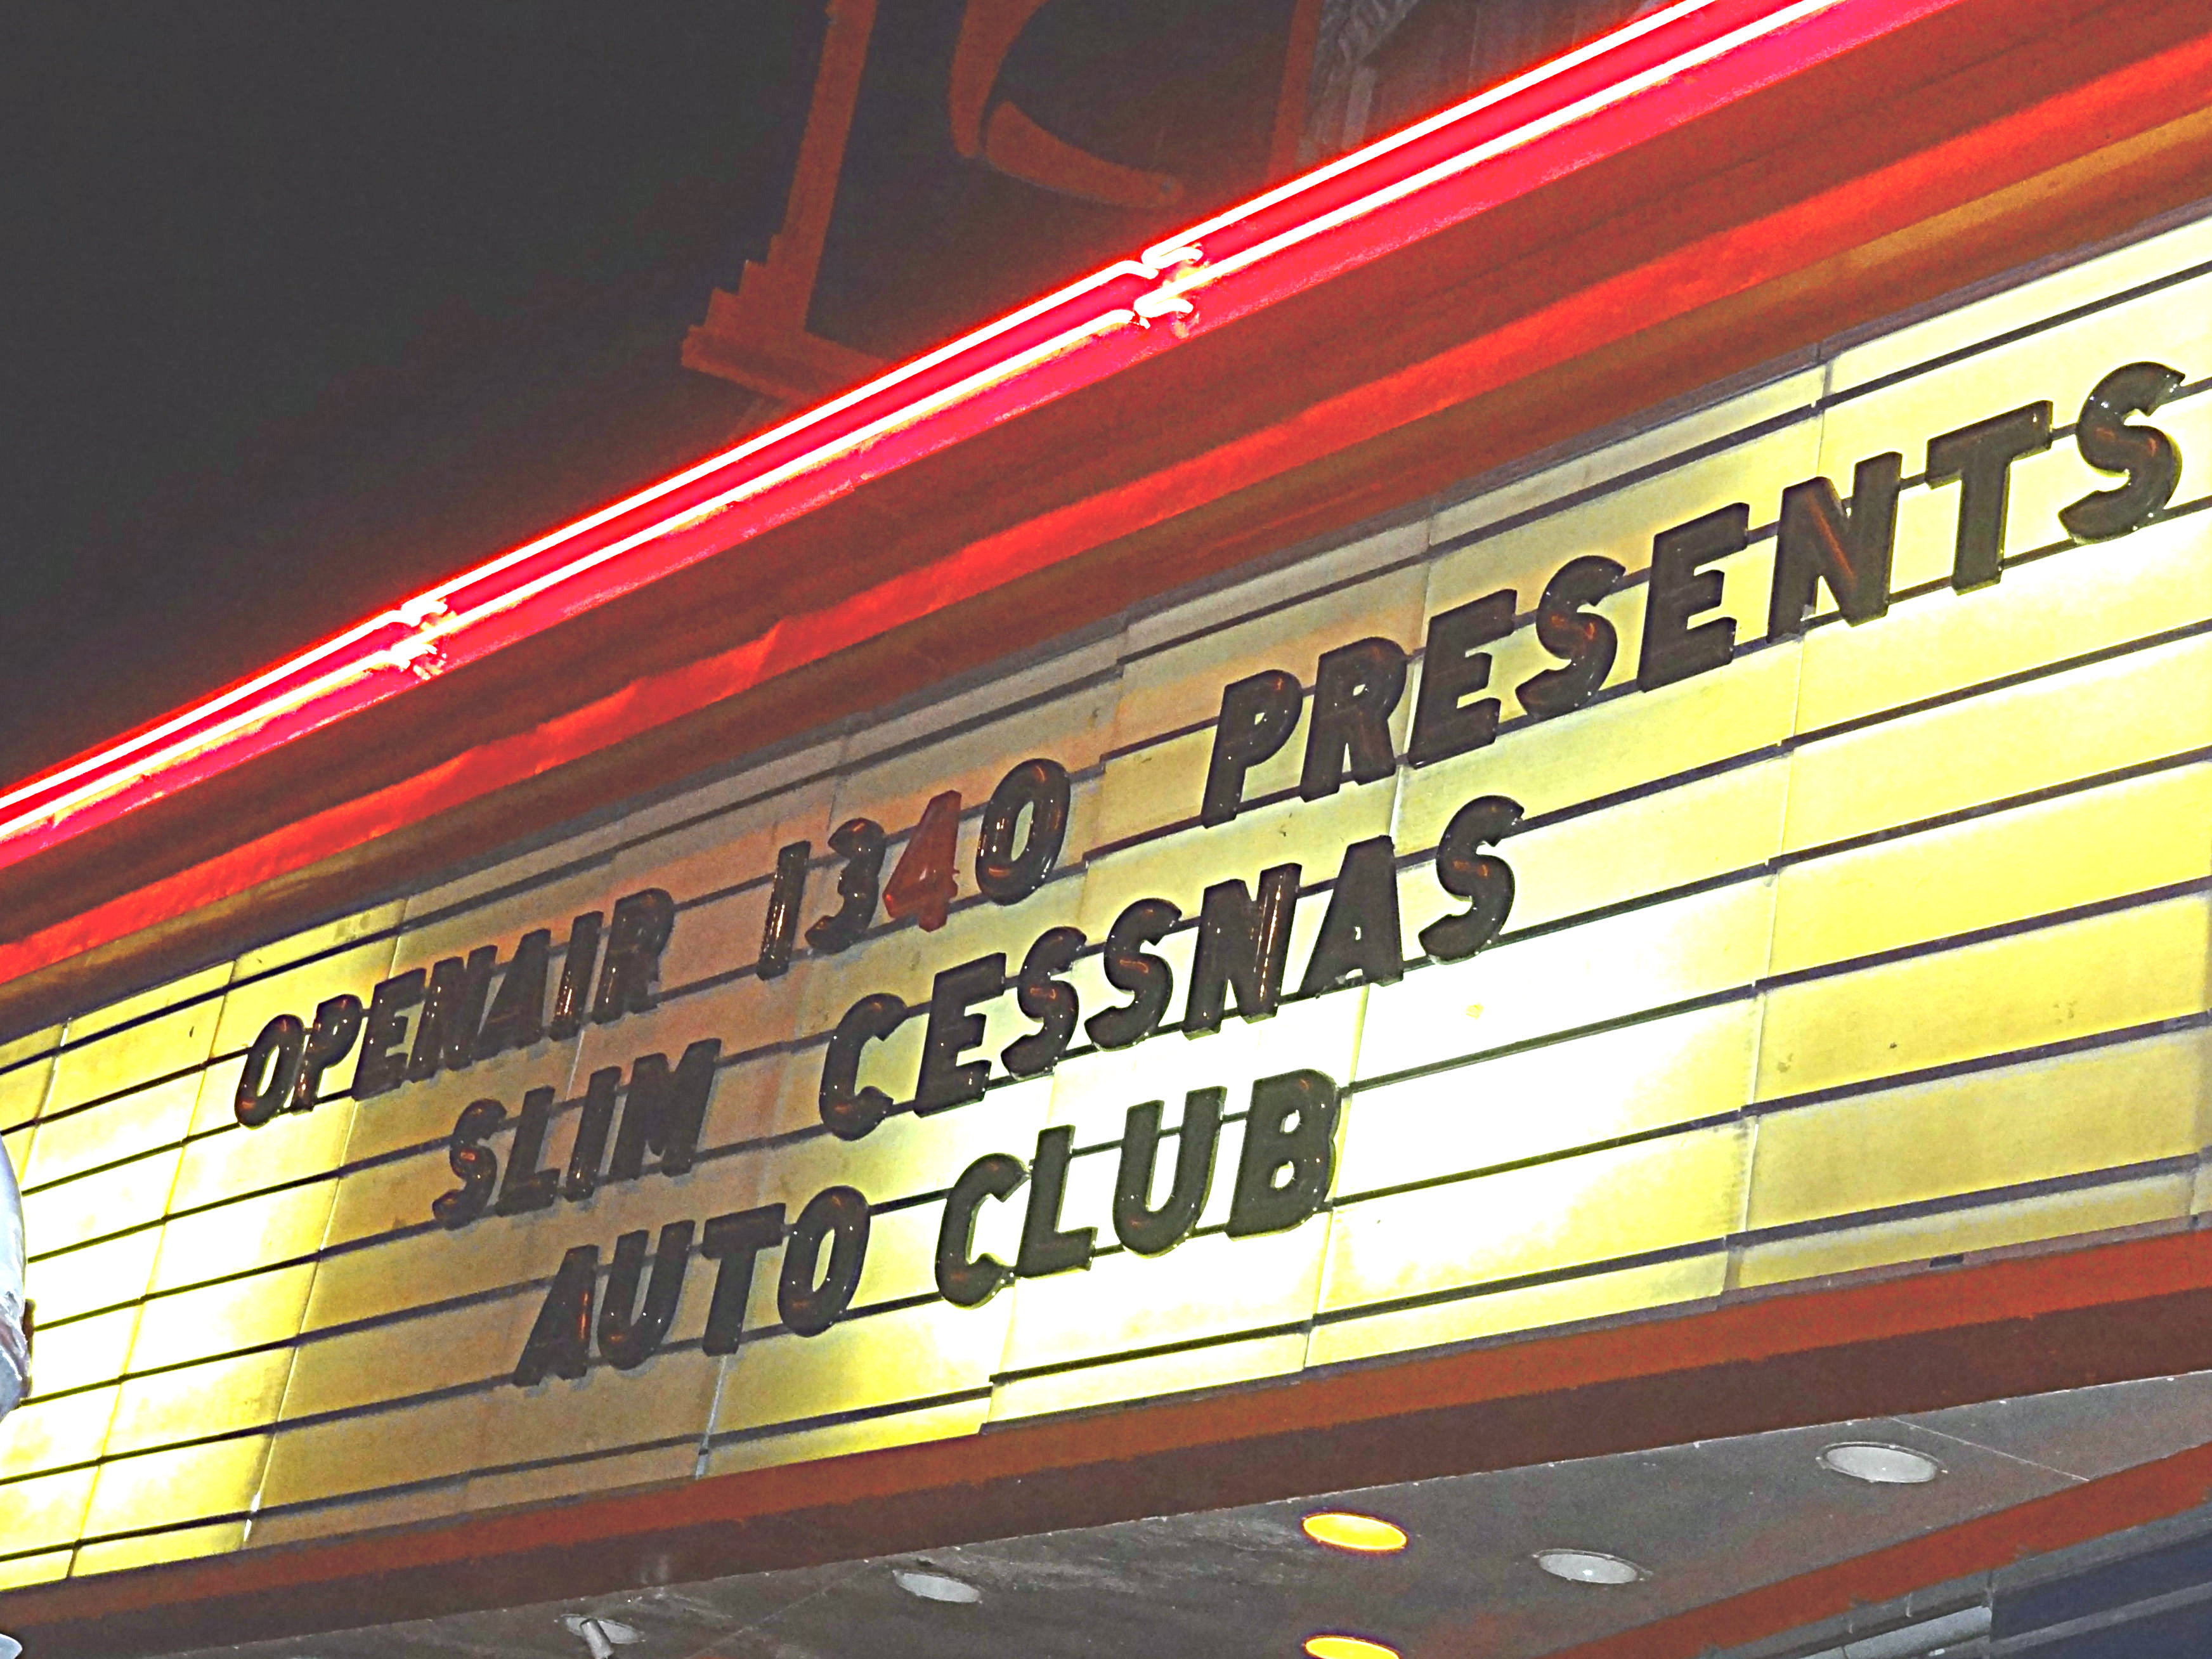 photo: Spend New Year's with OpenAir and Slim Cessna's Auto Club!